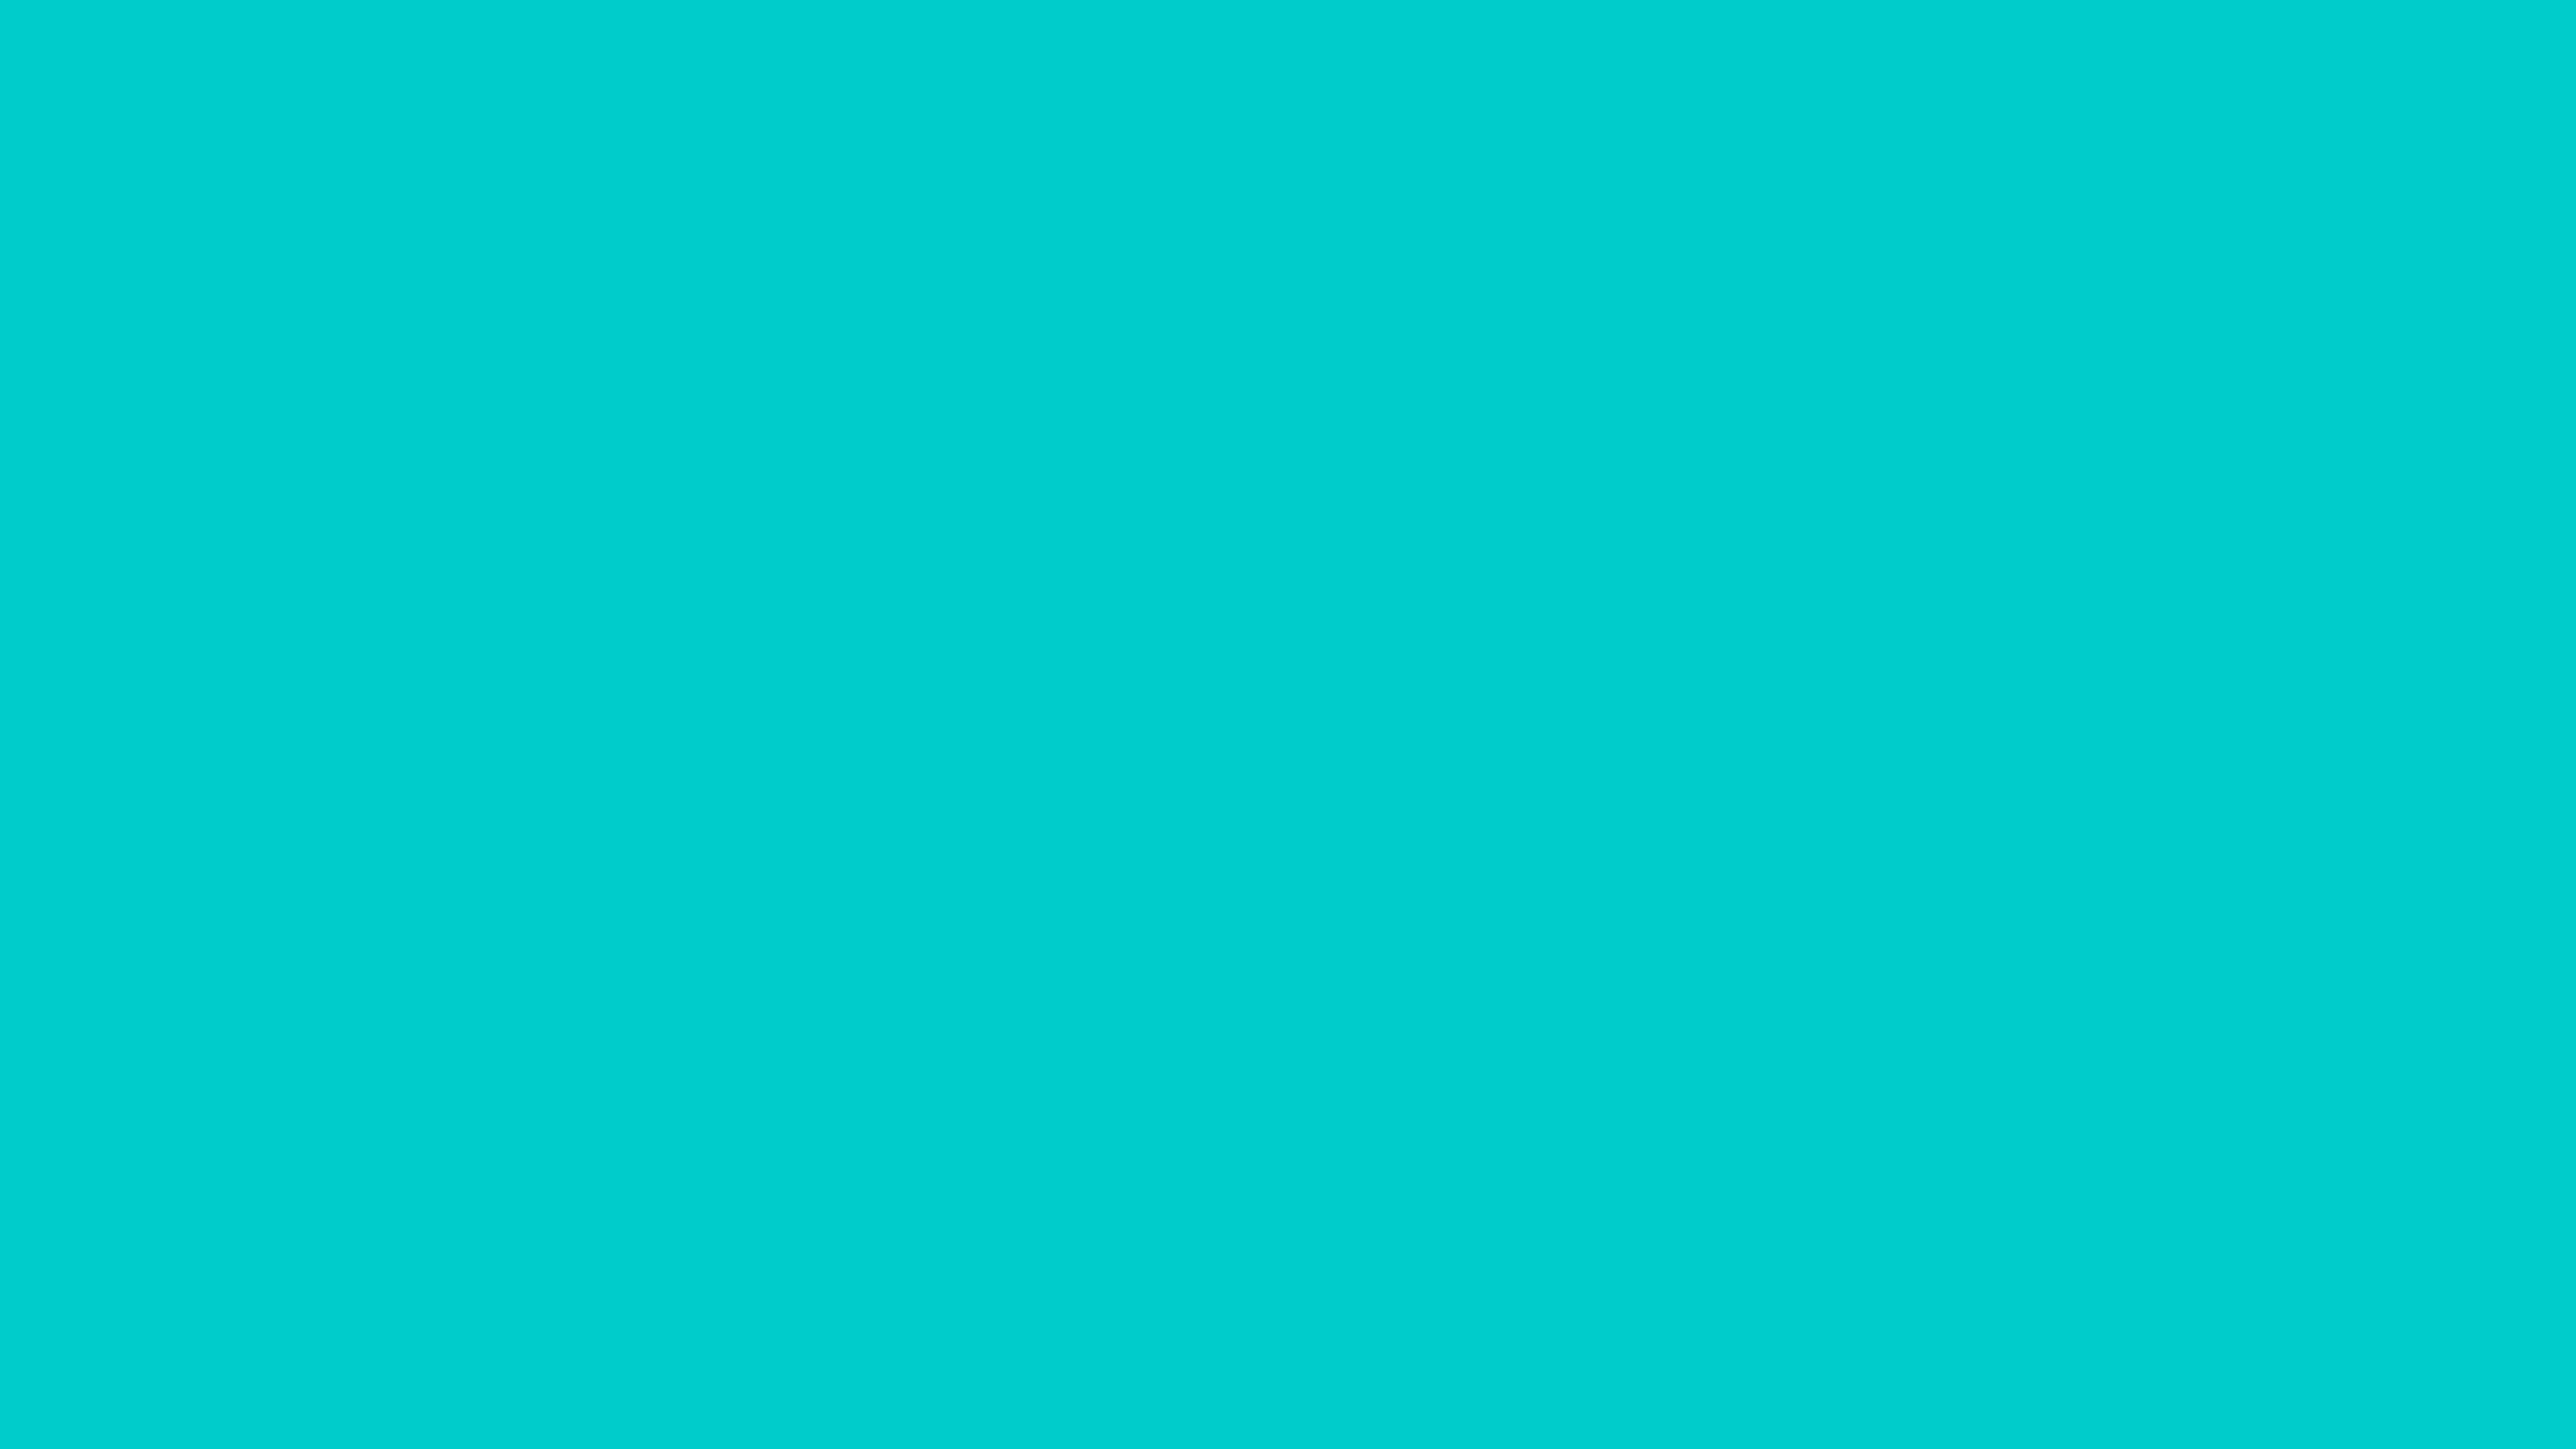 4096x2304 Robin Egg Blue Solid Color Background